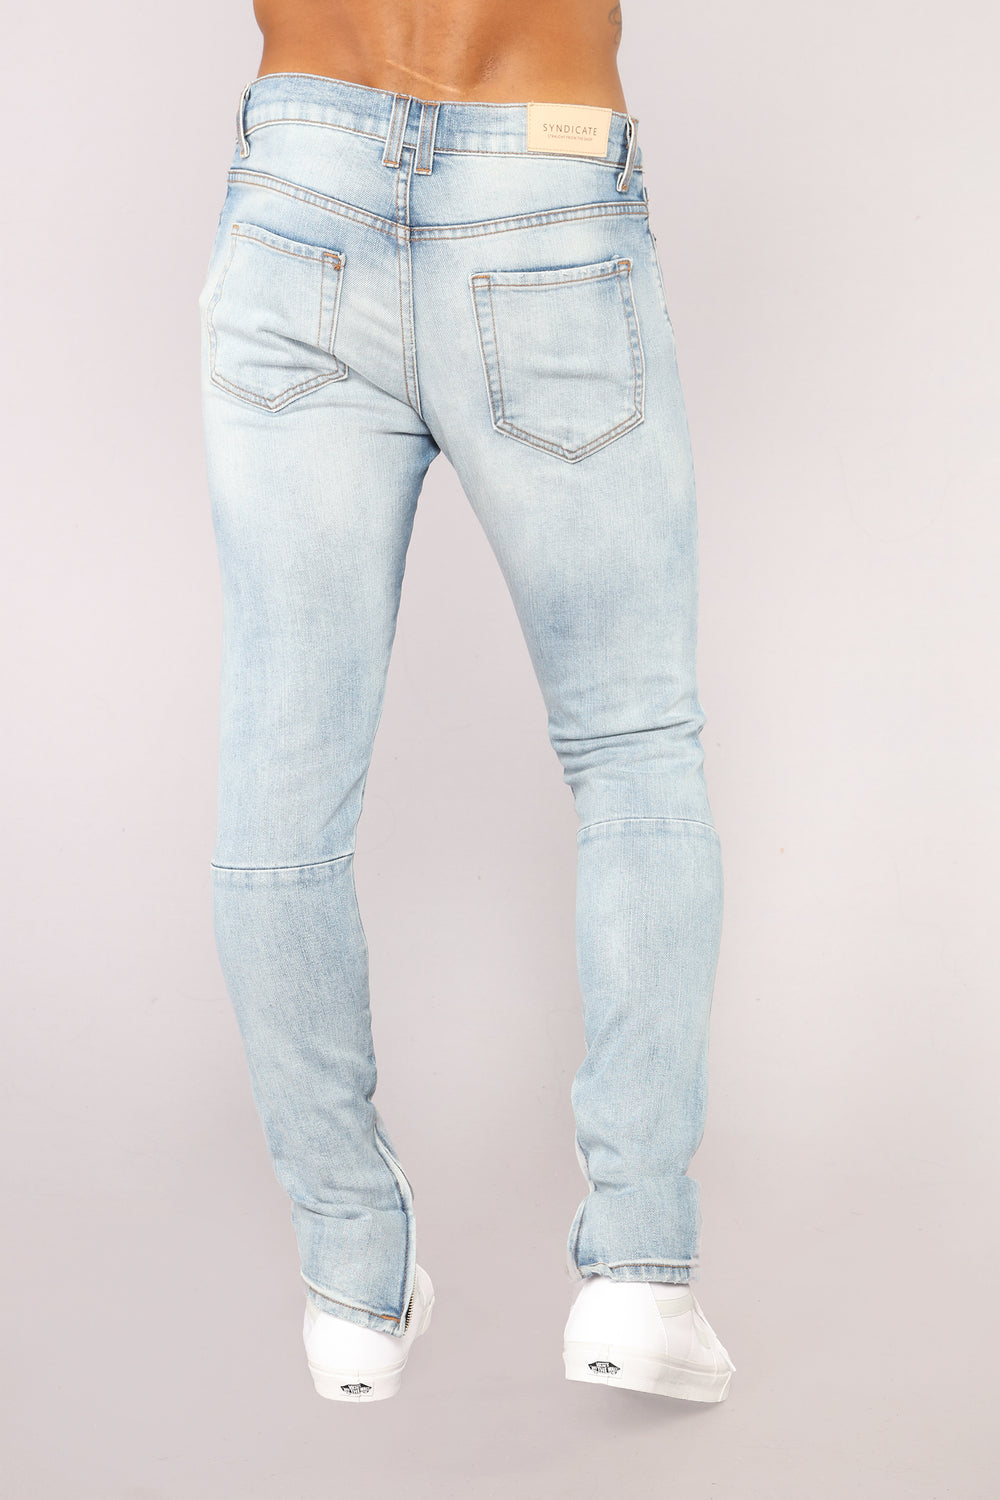 Laurence Skinny Jeans - Light Wash